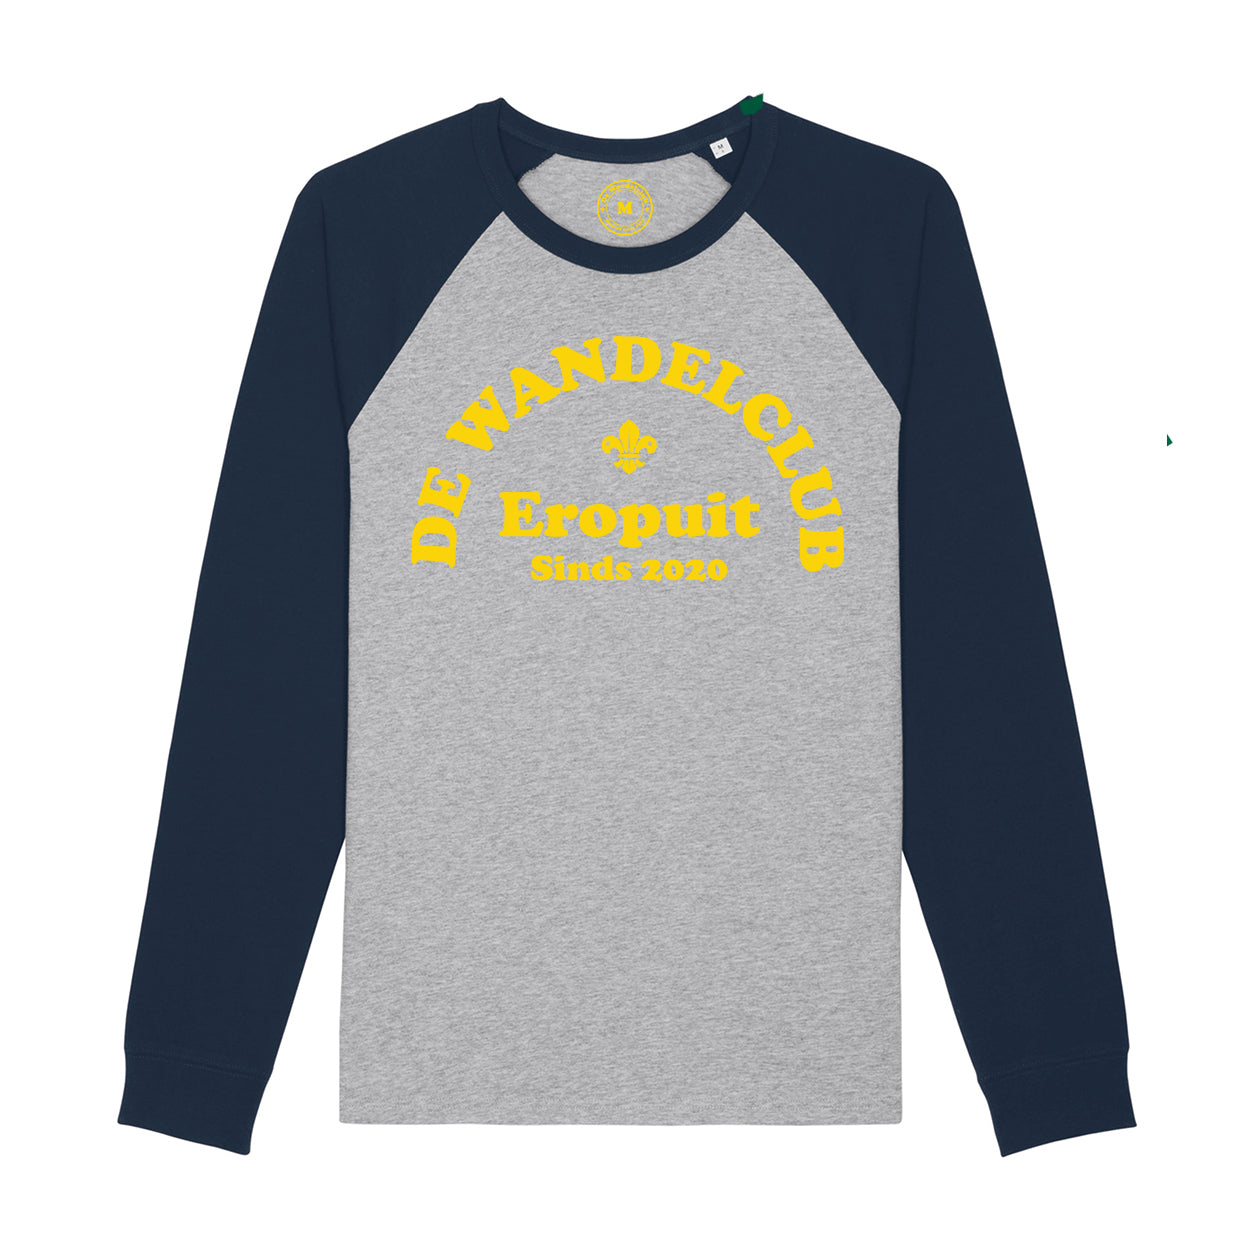 Shirt de Wandelclub - Long sleeve